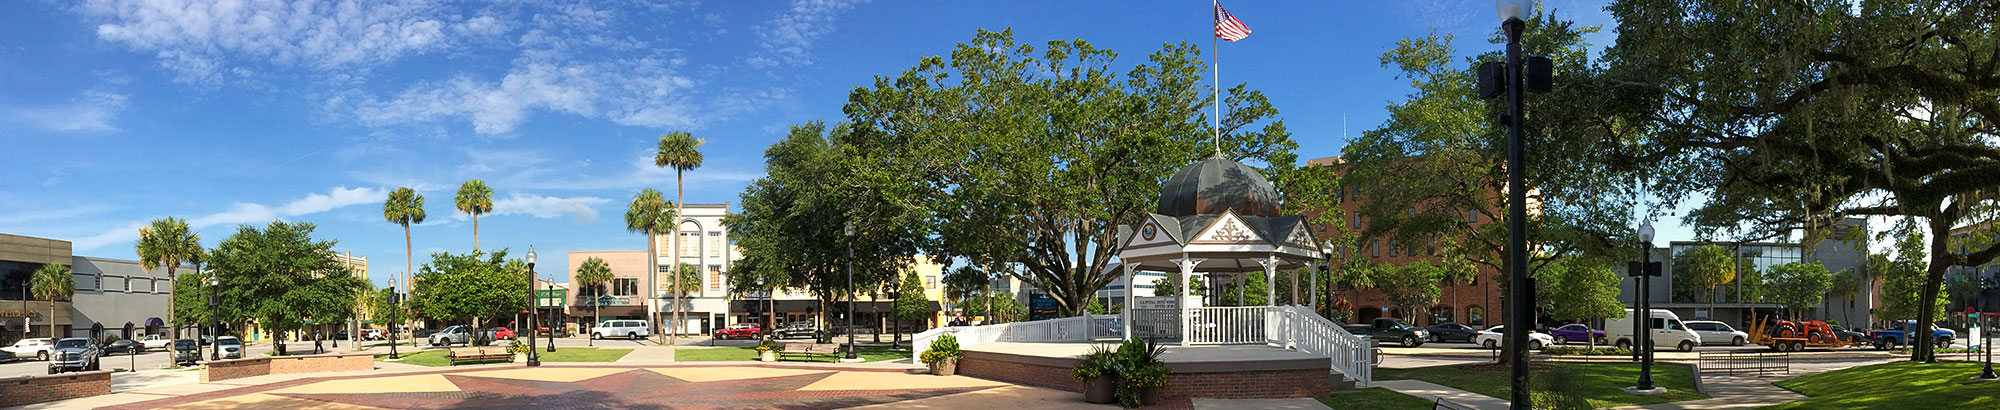 Ocala-Downtown-Square-8308a